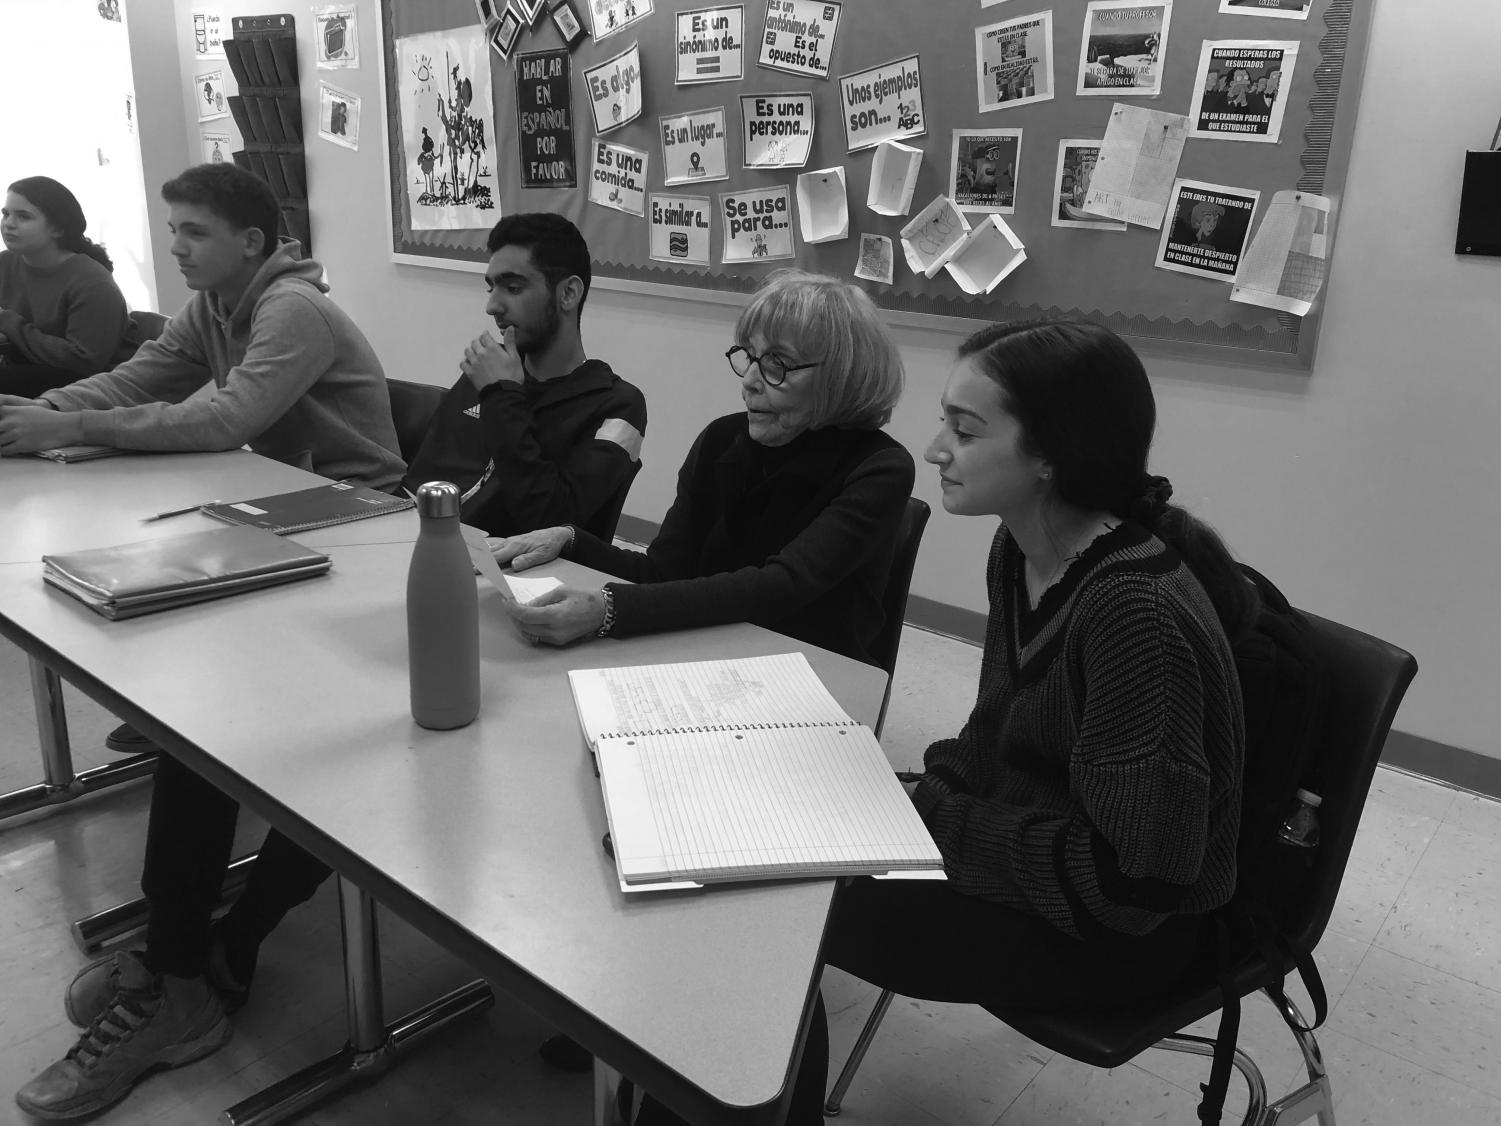 Dean of Students Roslyn Landy sits in on a senior math class and observes the learning experience. In addition to shadowing students, administrators regularly sit in on classes to evaluate teachers.